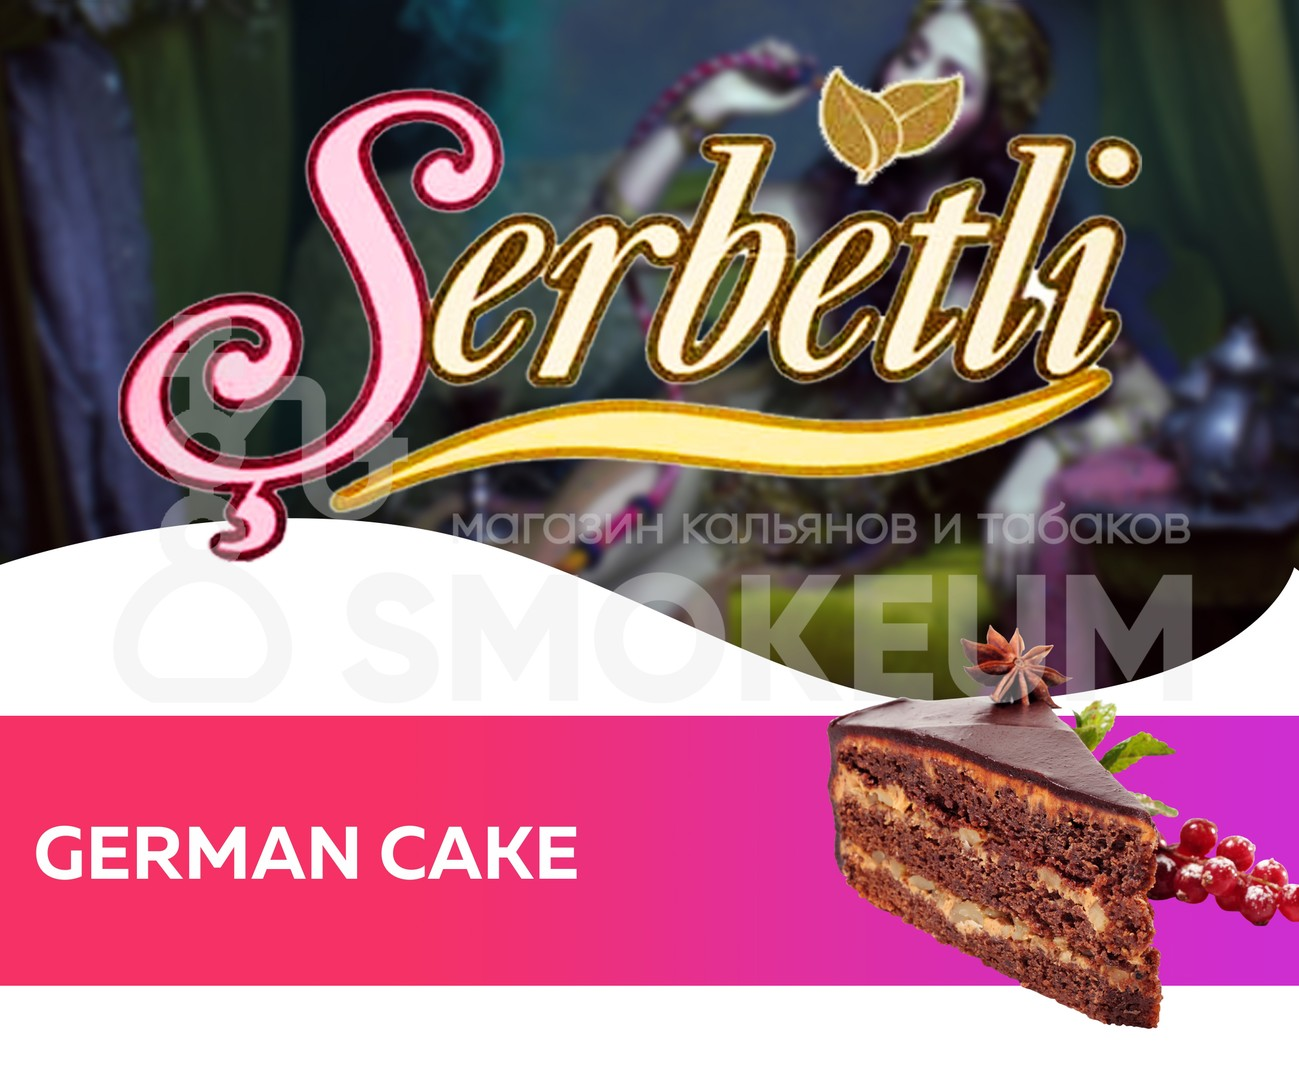 Табак Serbetli - German Cake (Бисквит) 50 гр